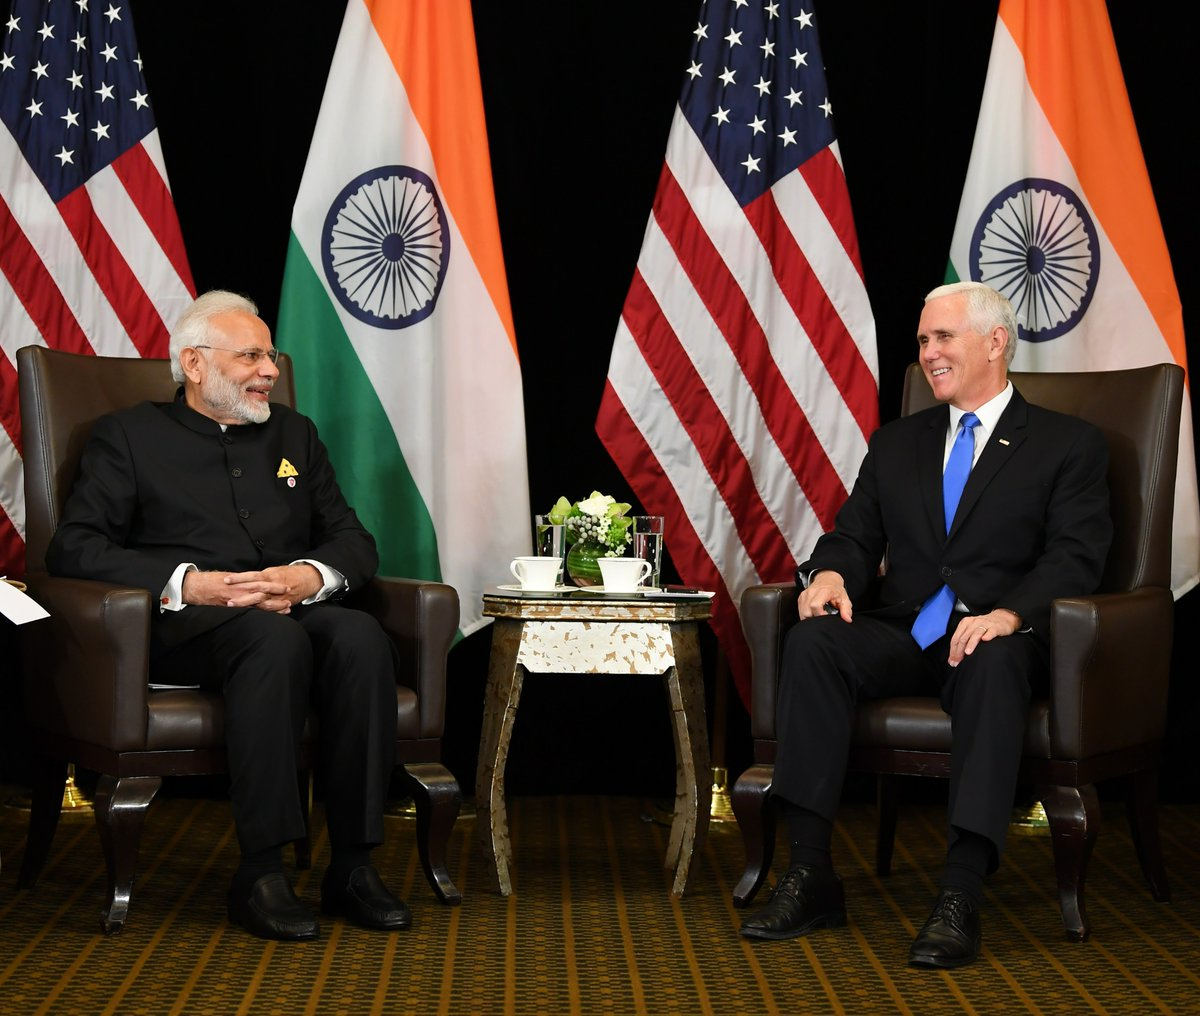 Singapore, PM Modi, US, Vice President, Mike Pence, discuss, bilateral, ties, Prime Minister, Narendra Modi, United States, India, NewsMobile, Mobile, News, World